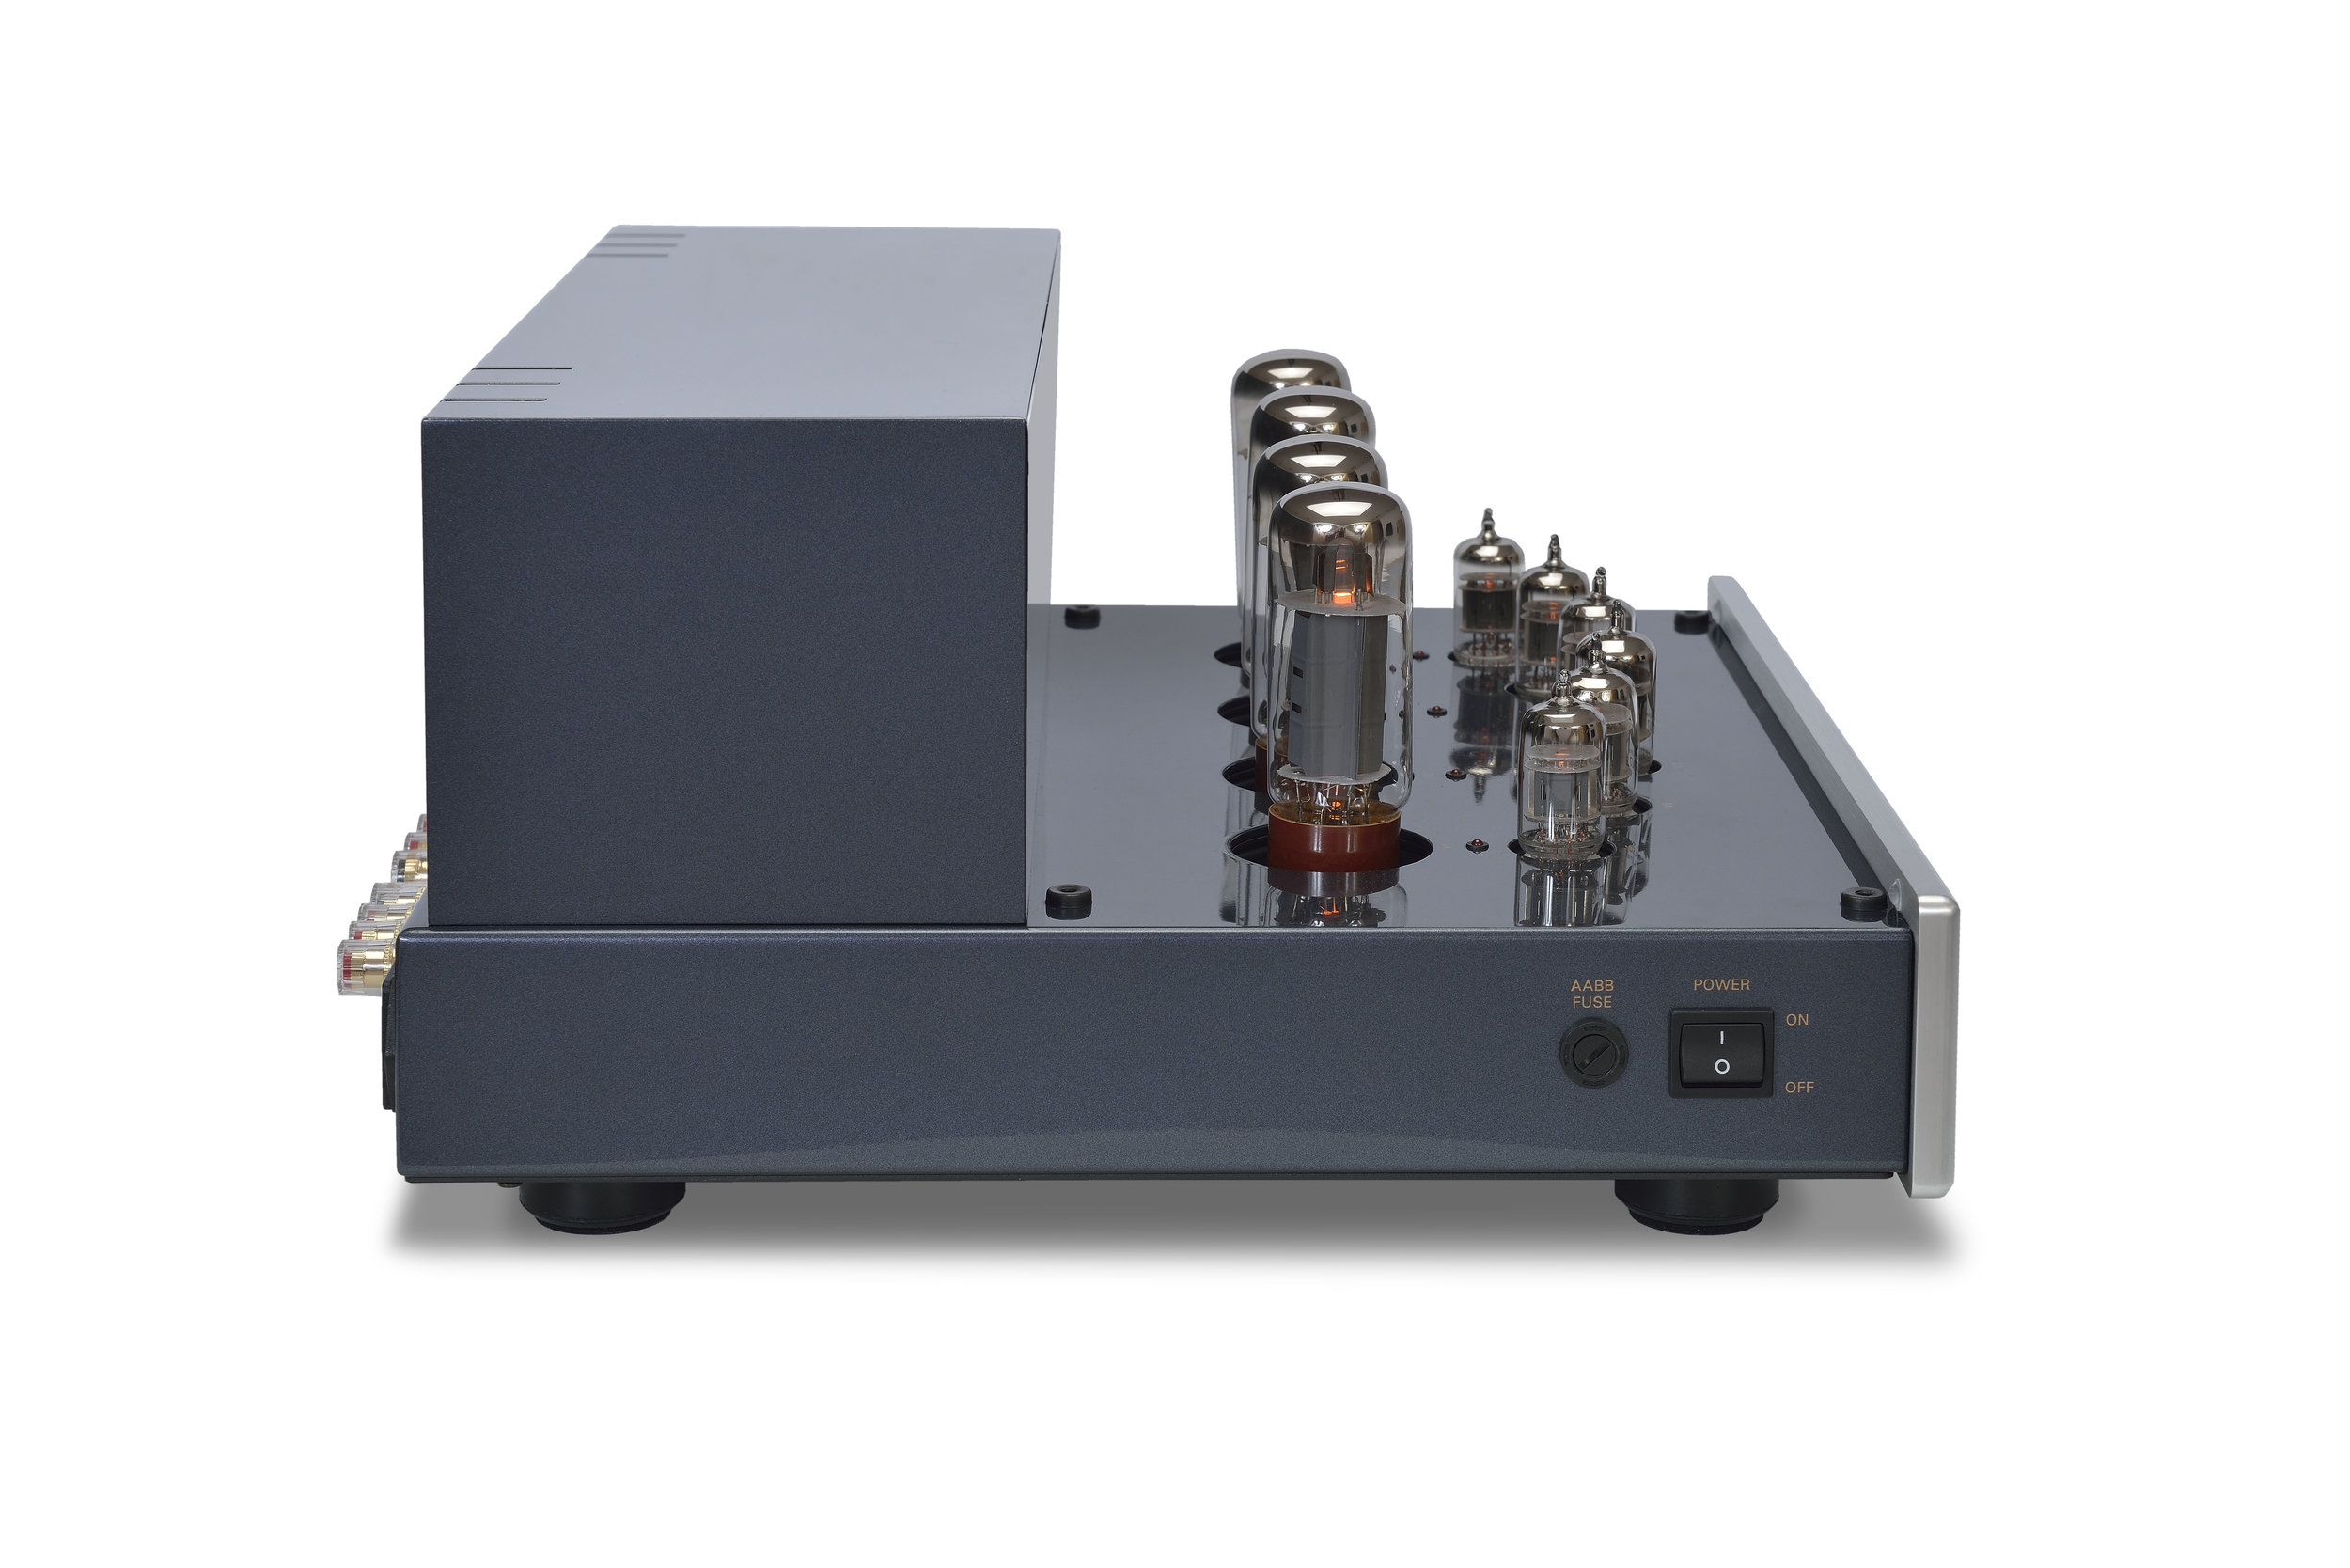 038b - PrimaLuna Evo 300 Tube Poweramplifier - silver - quarter turned - without cage - white background.jpg